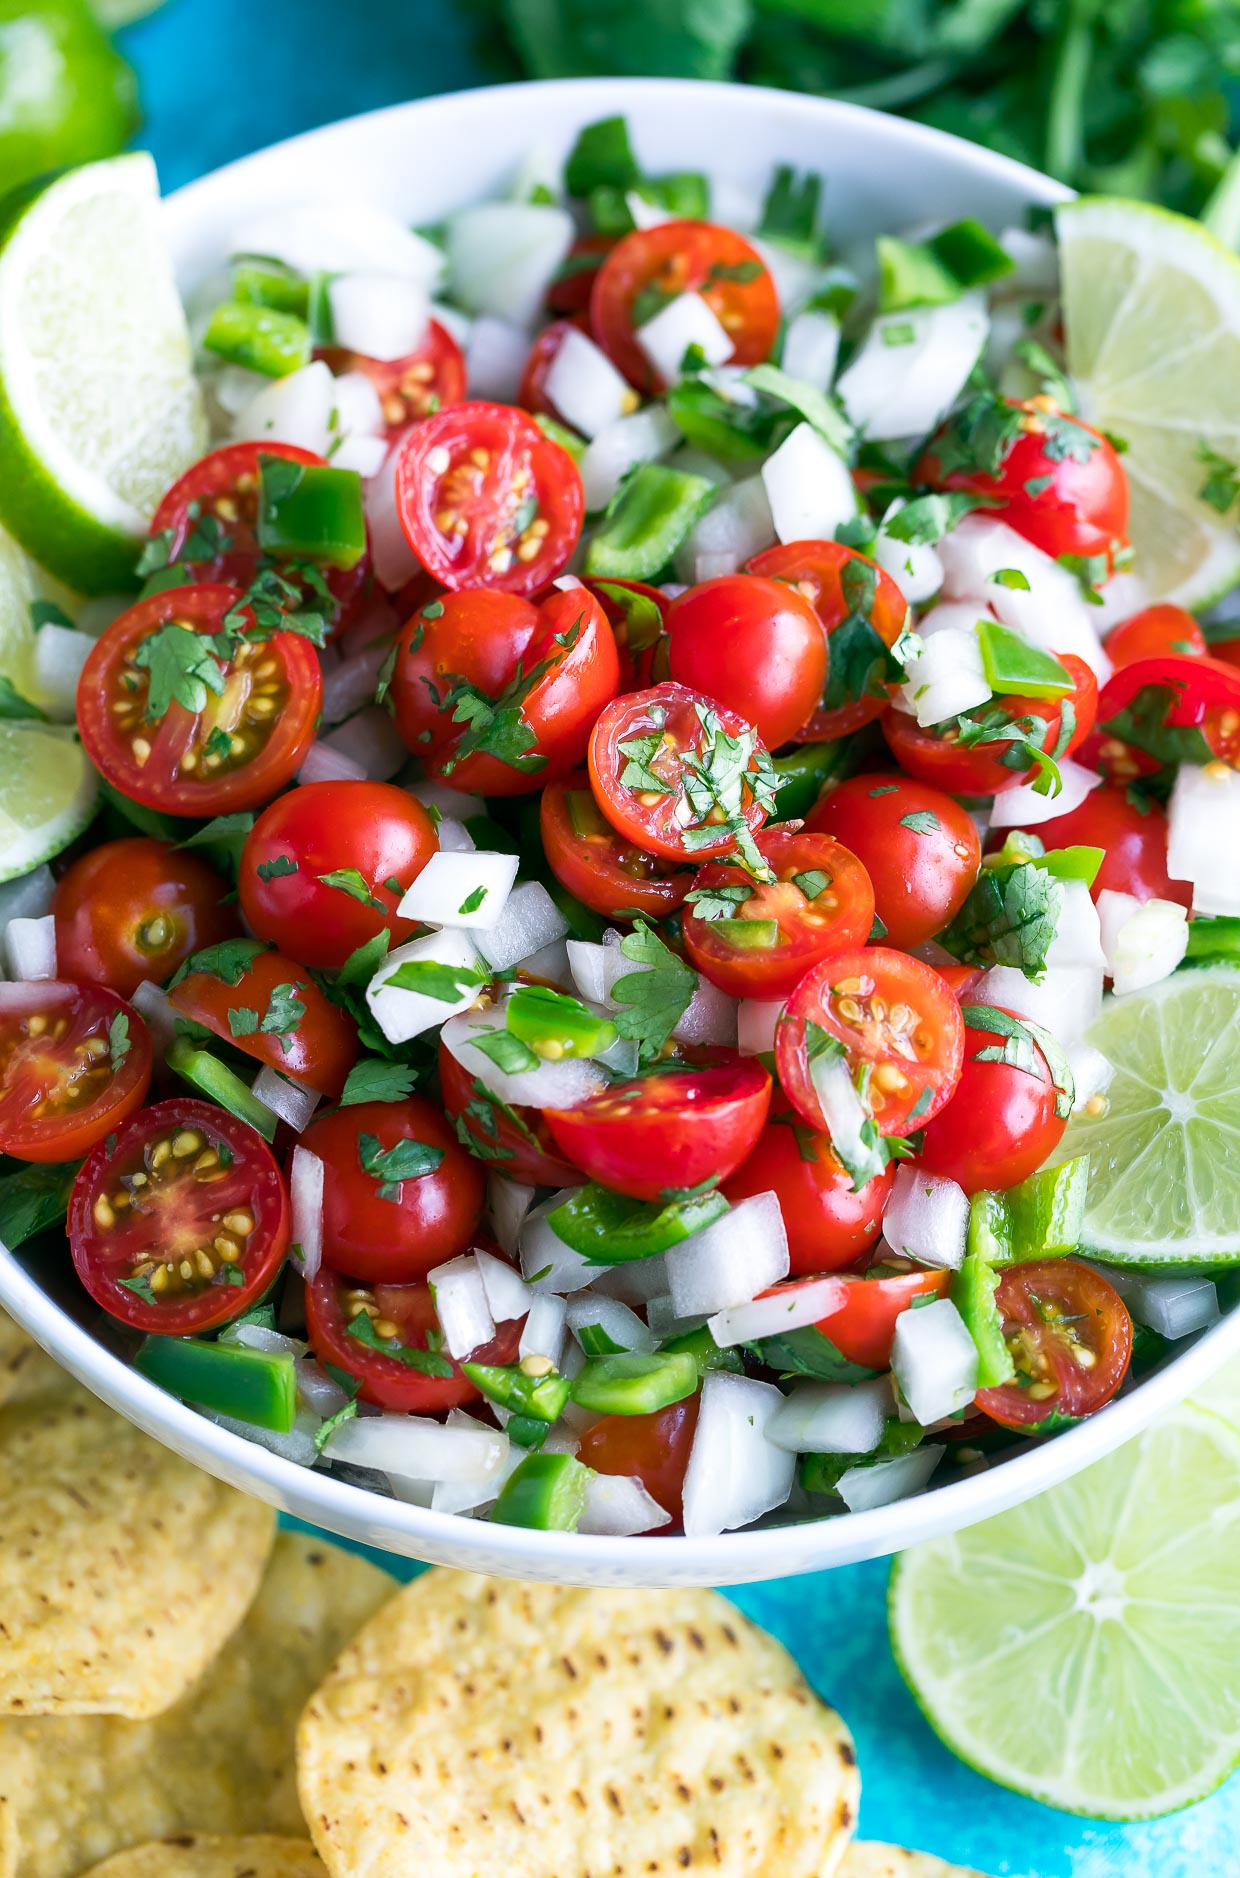 Healthy Cherry Tomato Pico de Gallo